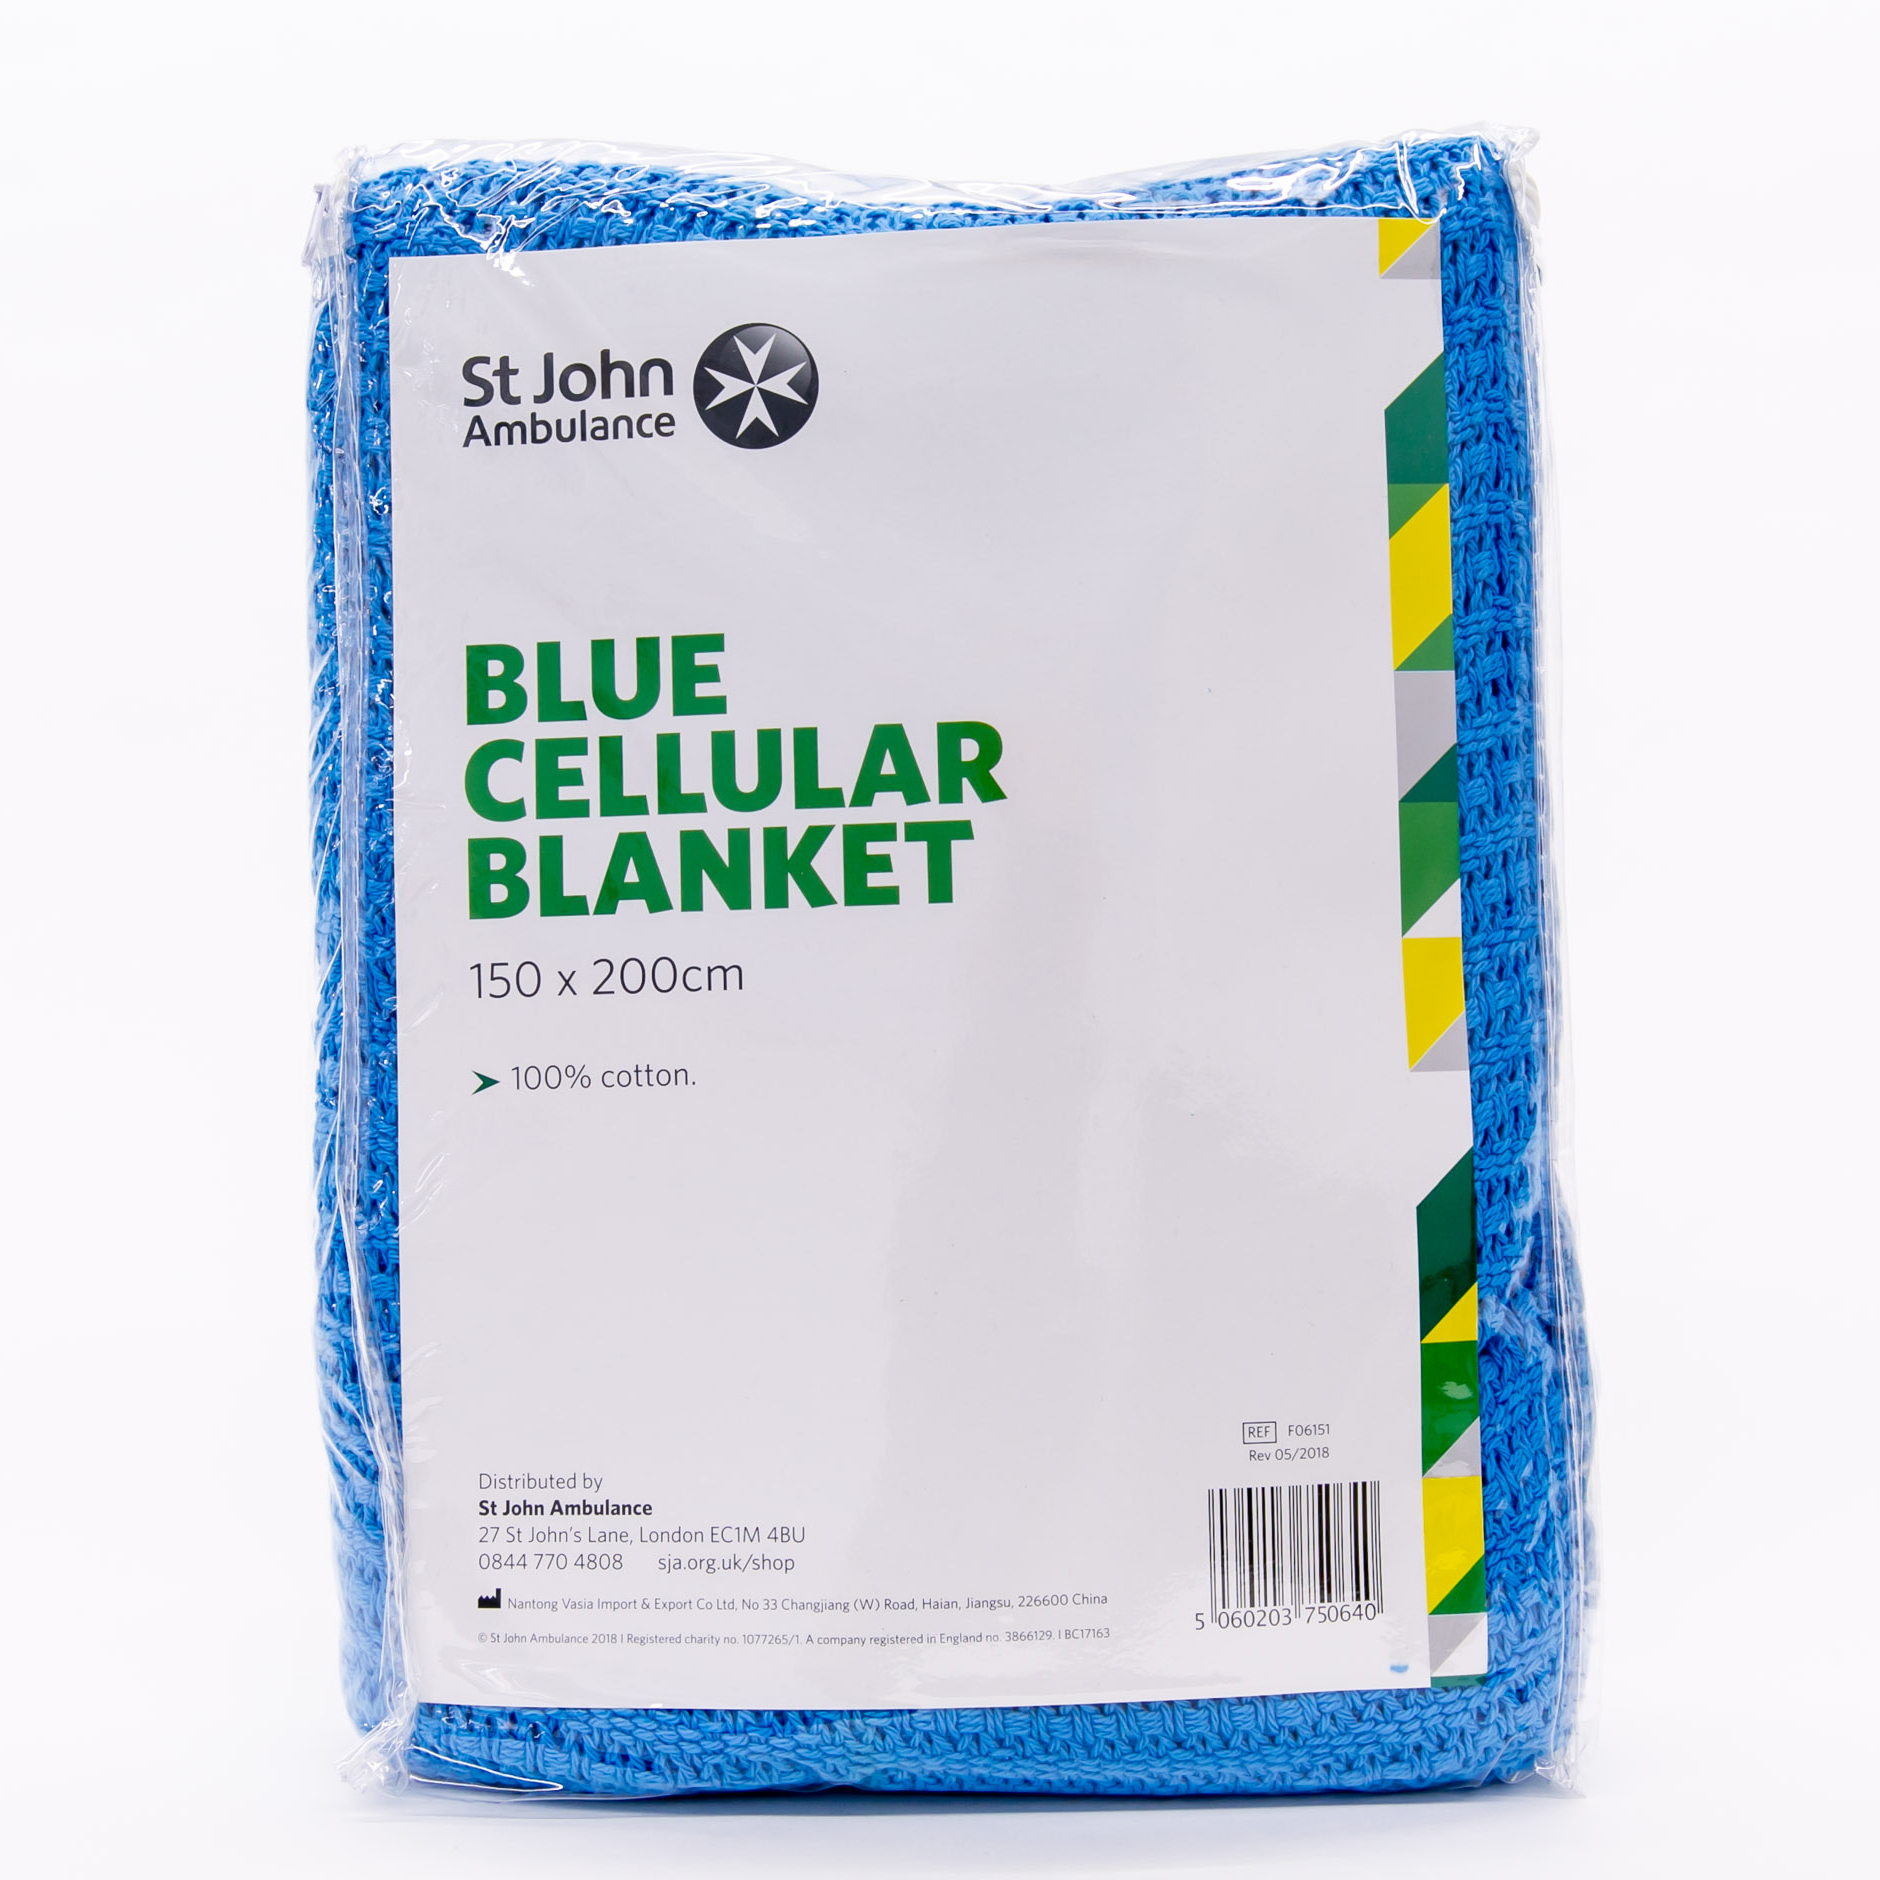 Blue Cellular Blanket